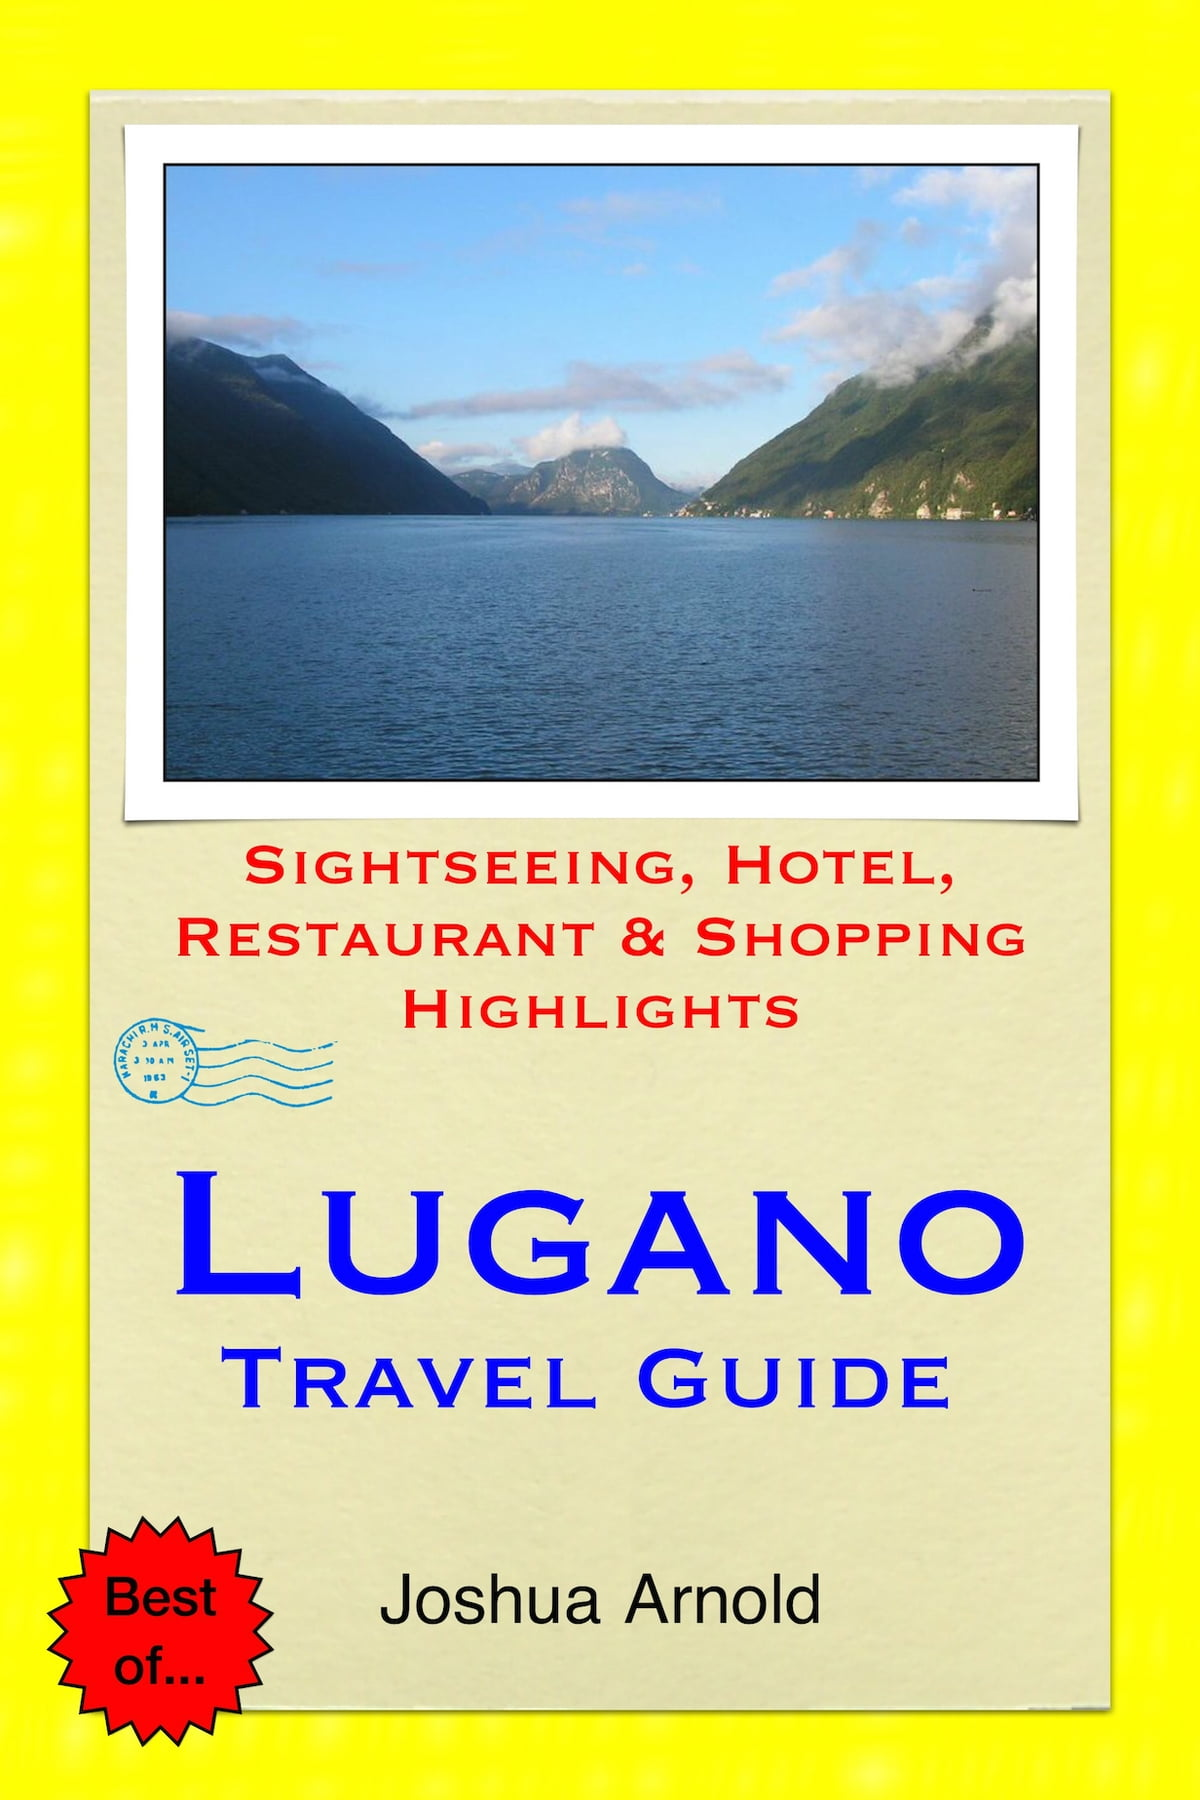 Arte Restaurant Lugano Lugano Switzerland Travel Guide Ebook By Joshua Arnold Rakuten Kobo